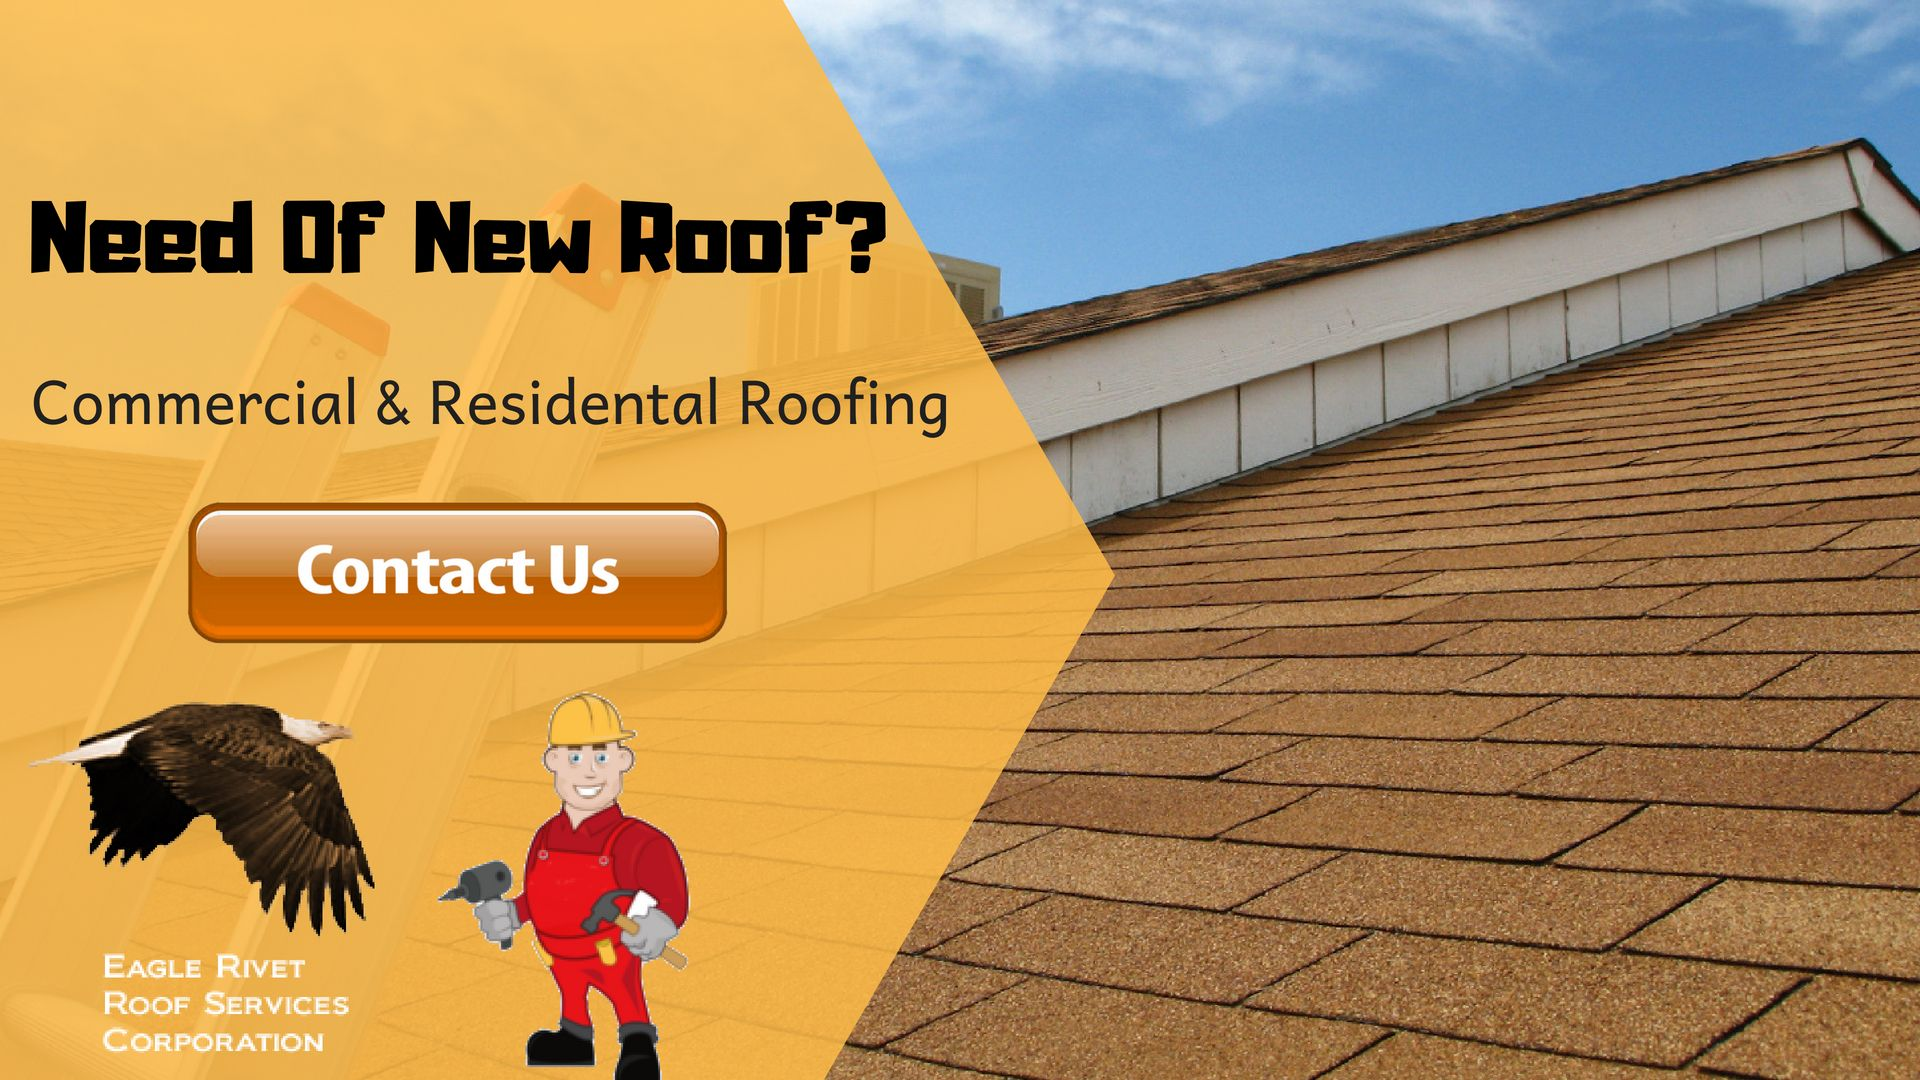 Do Your Roof Needs Replacement Services Eagle Rivet Roof Services Corporation Specialist Will Ensure That Your Home Has A Roofing Services Roof Problems Roof